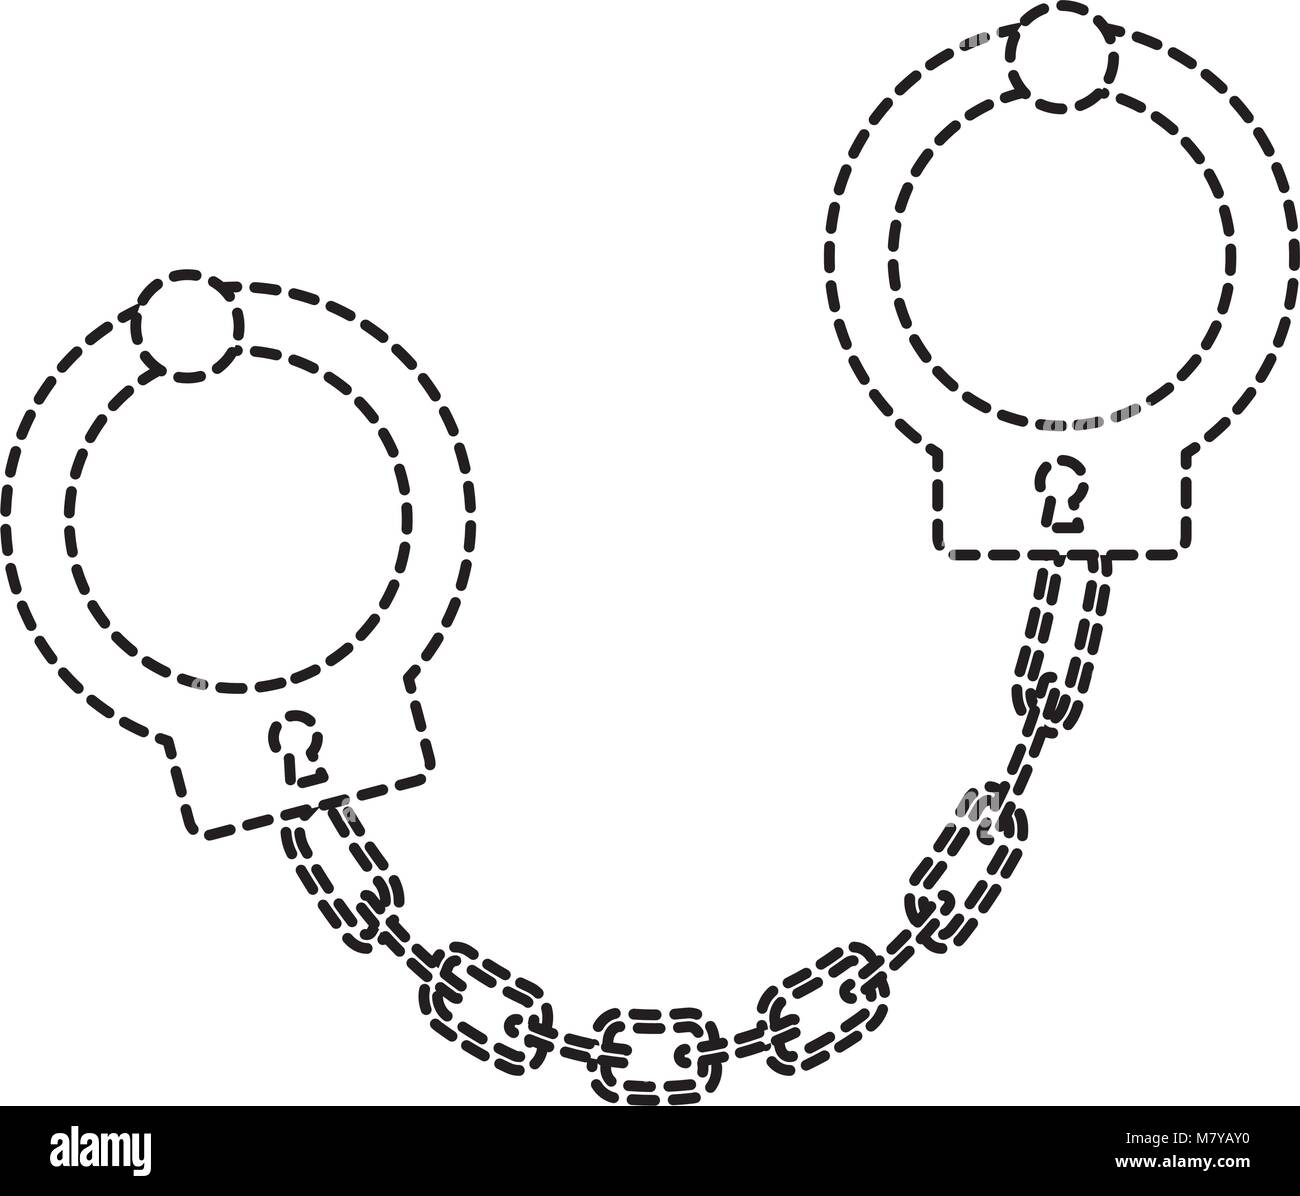 handcuffs icon over white background, vector illustration - Stock Image